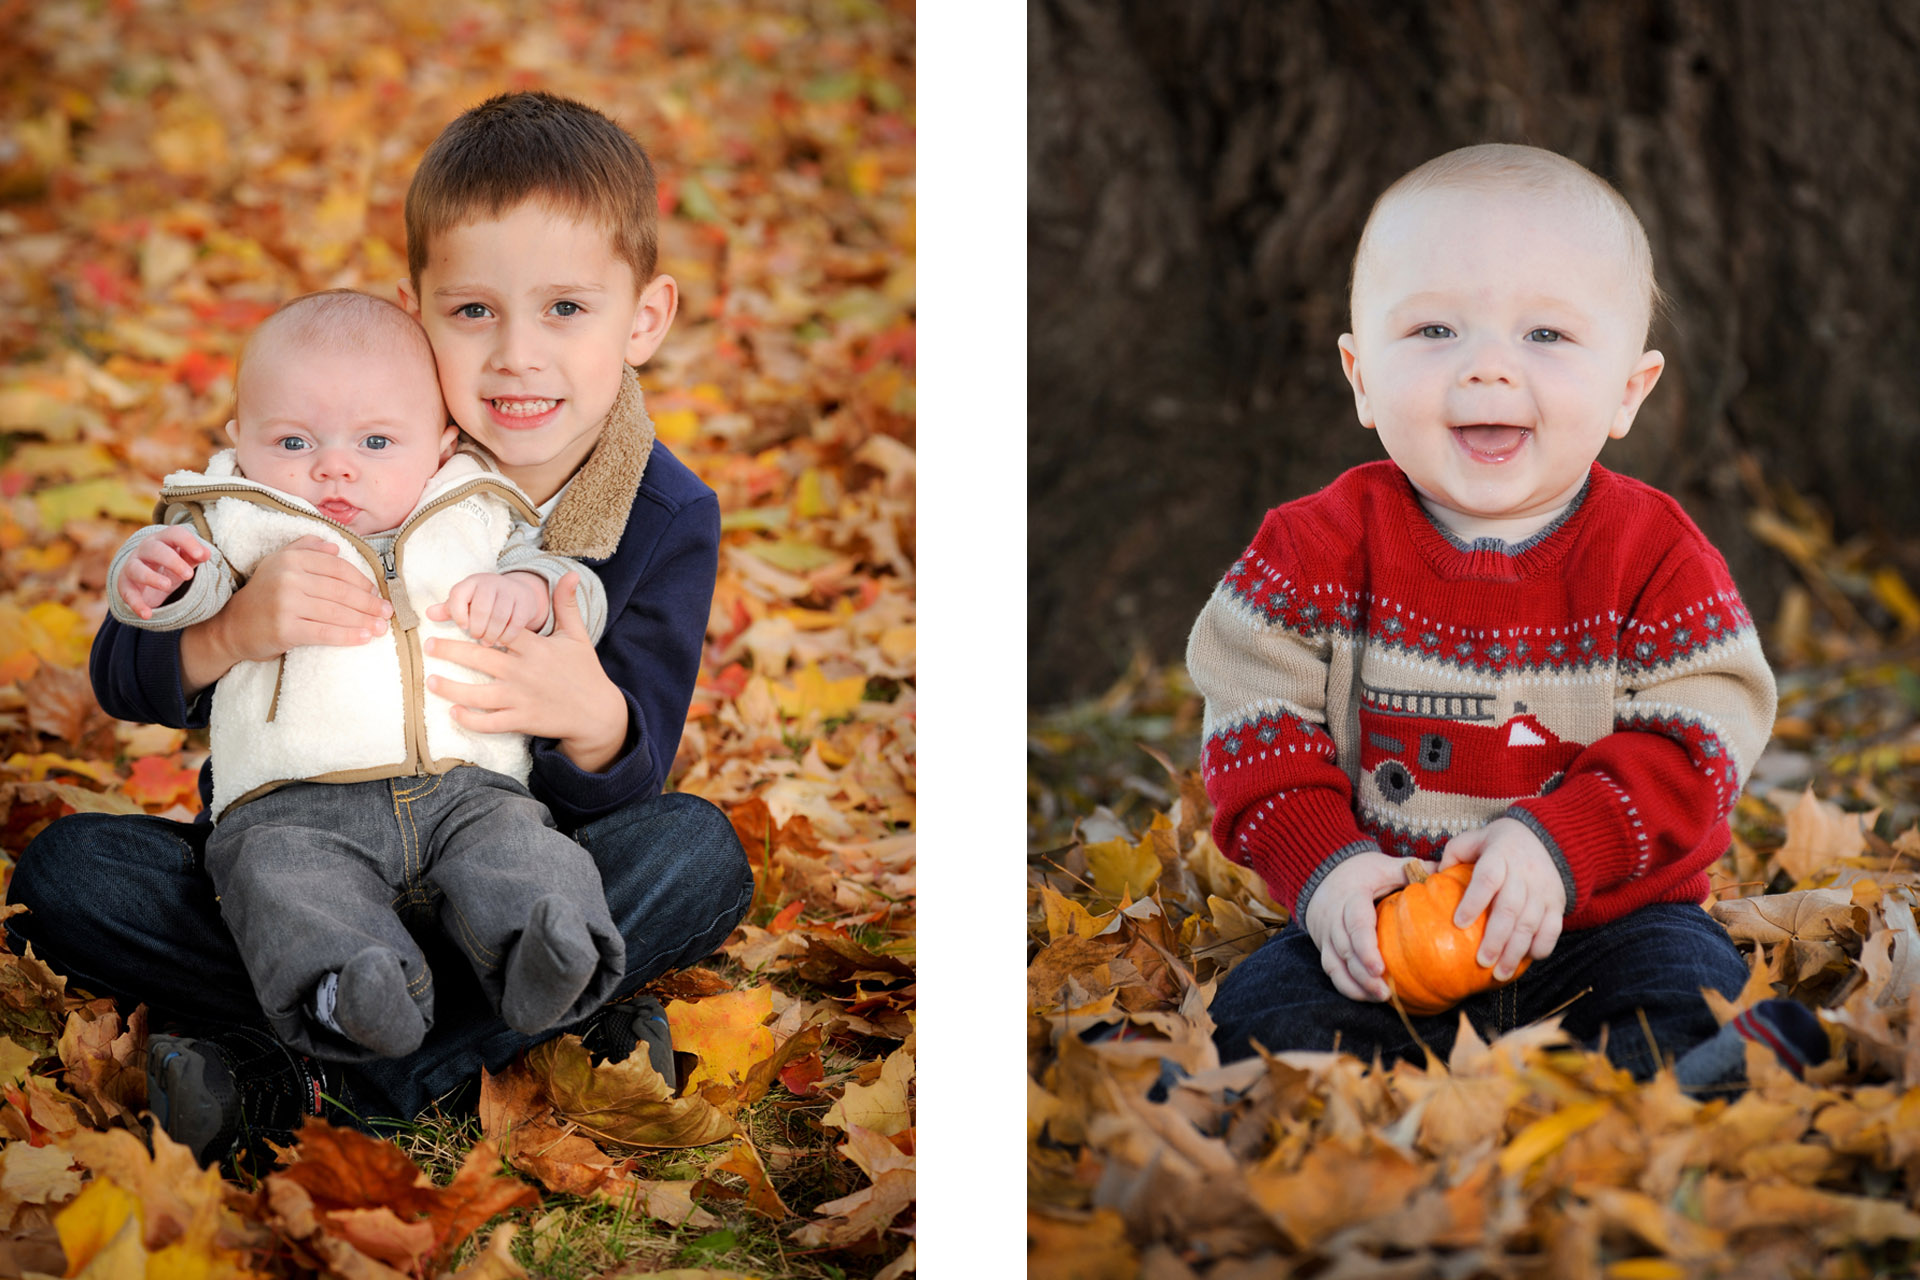 Best Detroit children photographer is happy to photograph kids enjoying the fall like these two kids photos of them enjoying the leaves in a park in metro Detroit, Michigan.